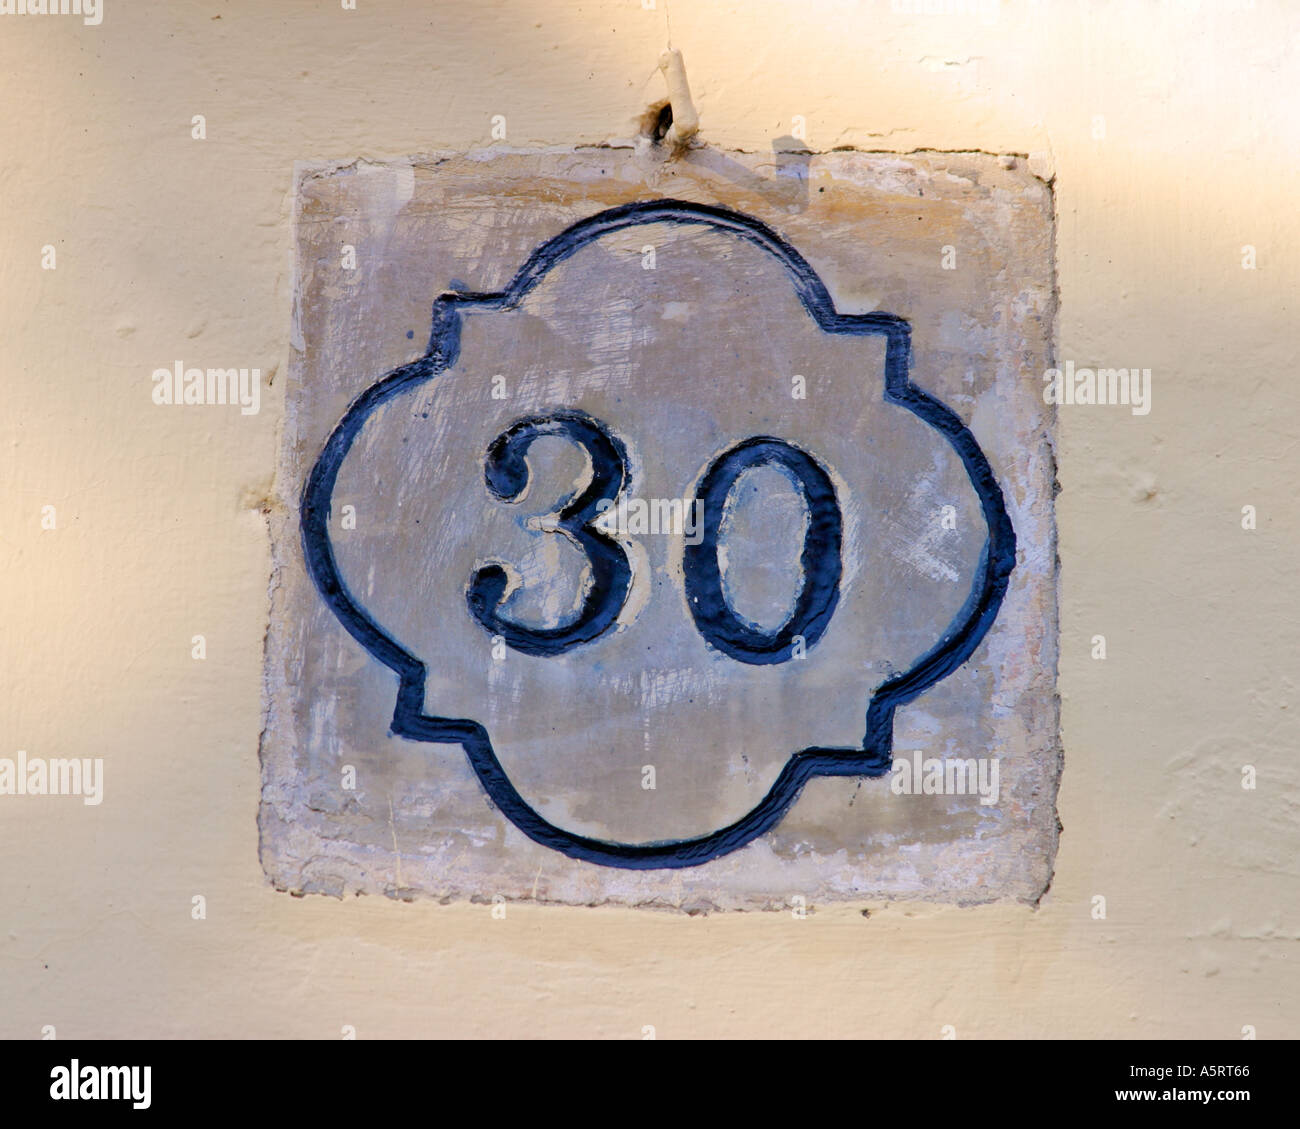 Number 30 - Stock Image